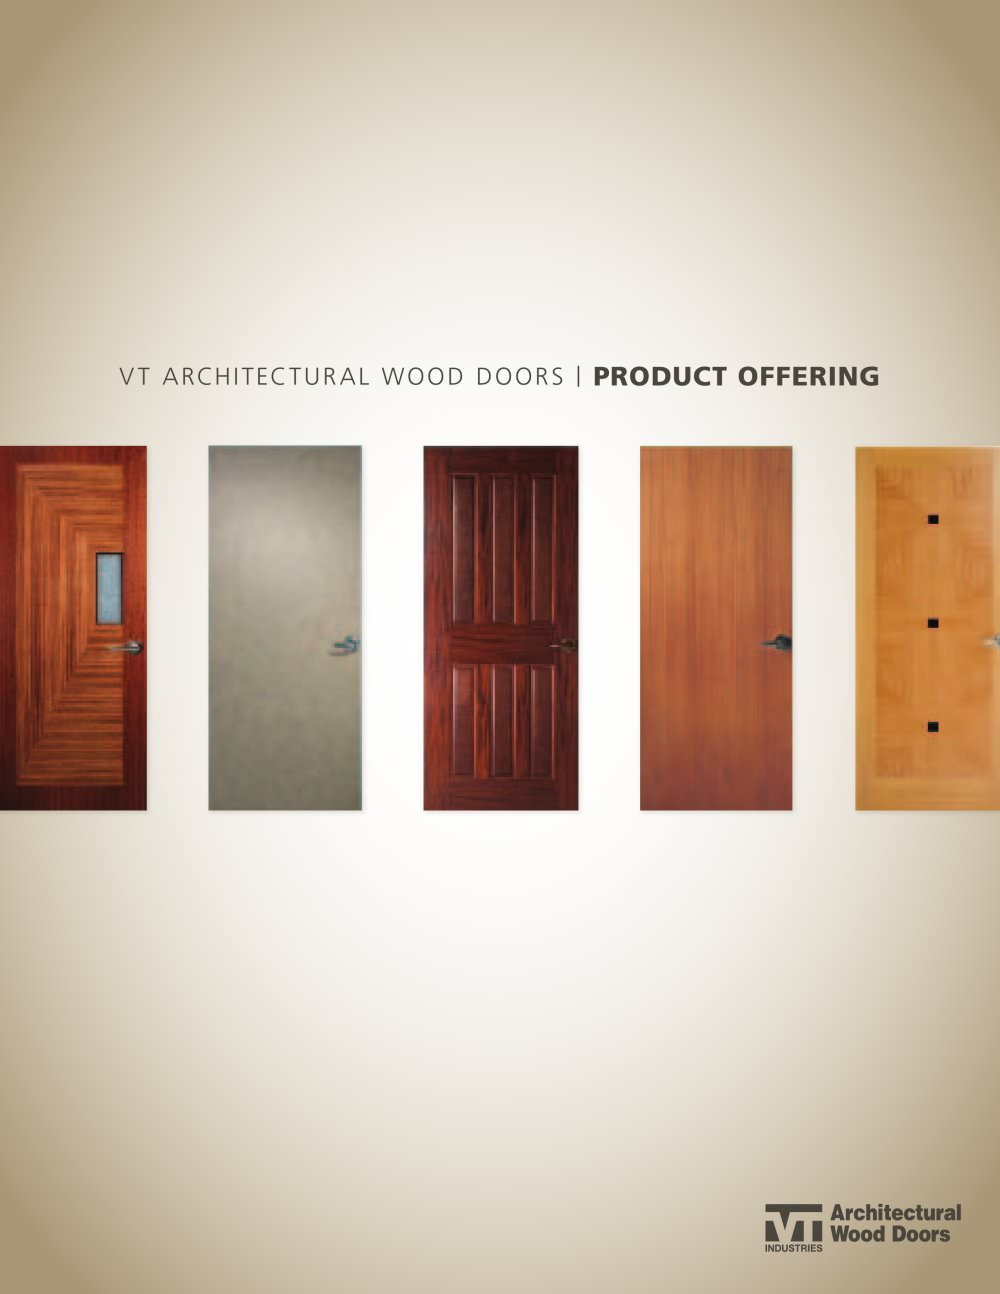 Charmant Vt Architectural Wood Doors / PRODUCT OFFERING   1 / 32 Pages